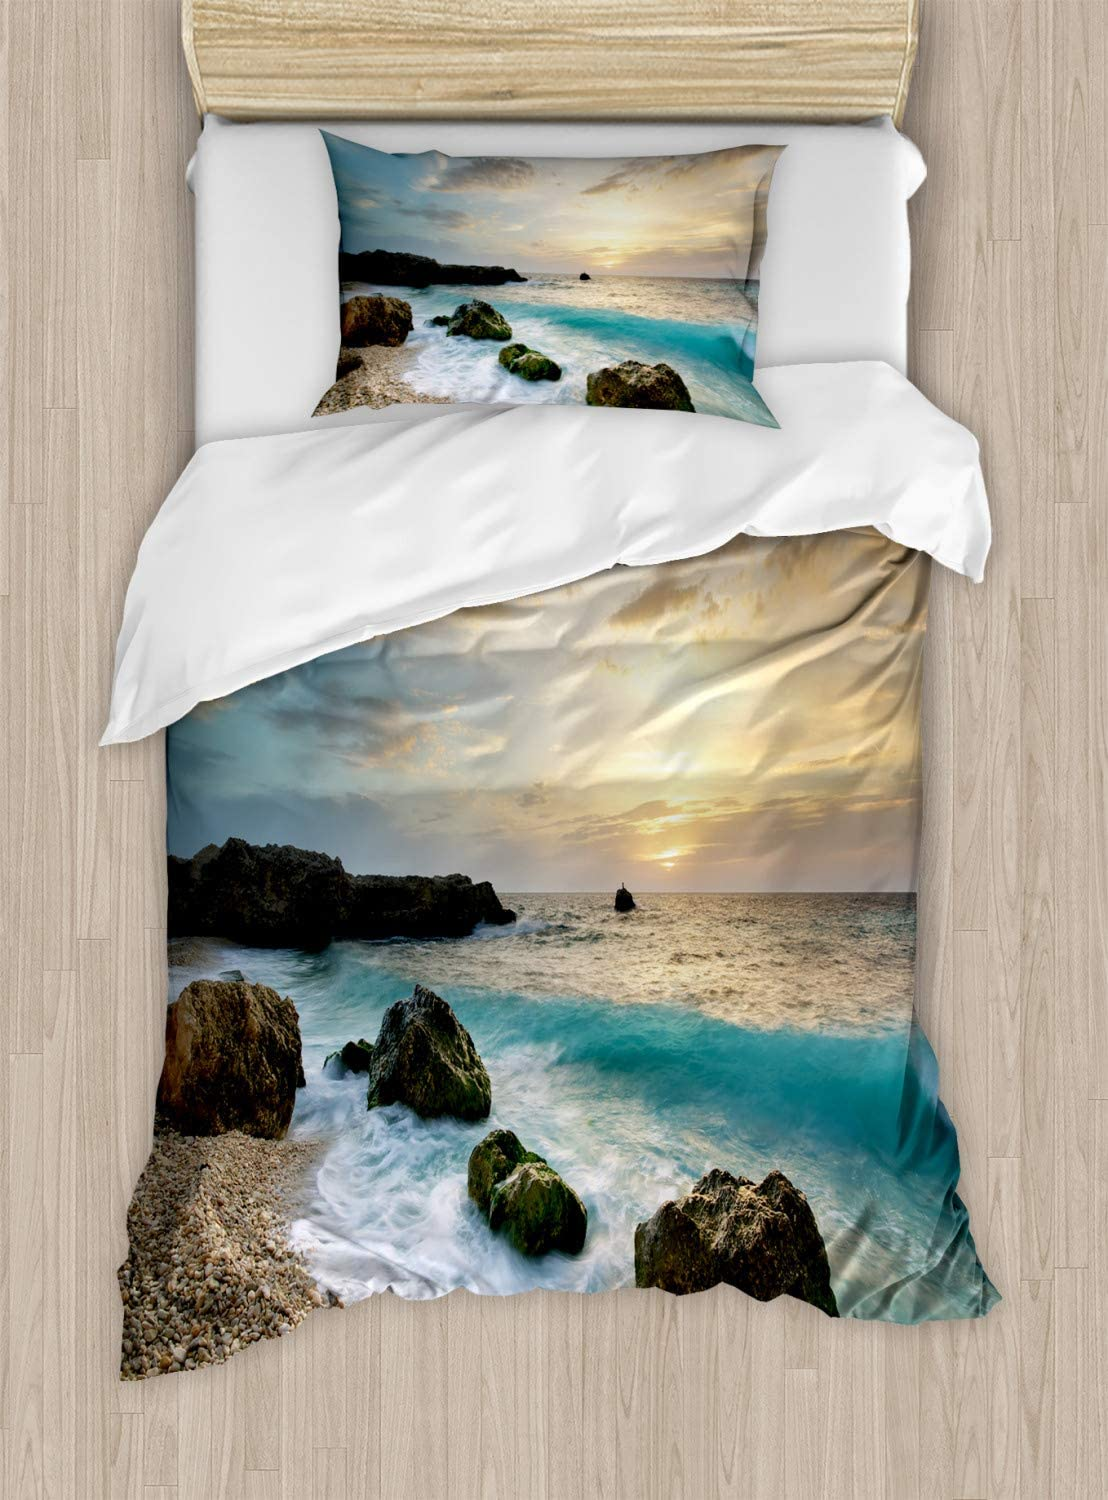 Ambesonne Ocean Duvet Cover Set, Seascape Composition of Nature Rocks Waves Cloudy Sky Rising Sun Beach Photo, Decorative 2 Piece Bedding Set with 1 Pillow Sham, Twin Size, Brown Blue